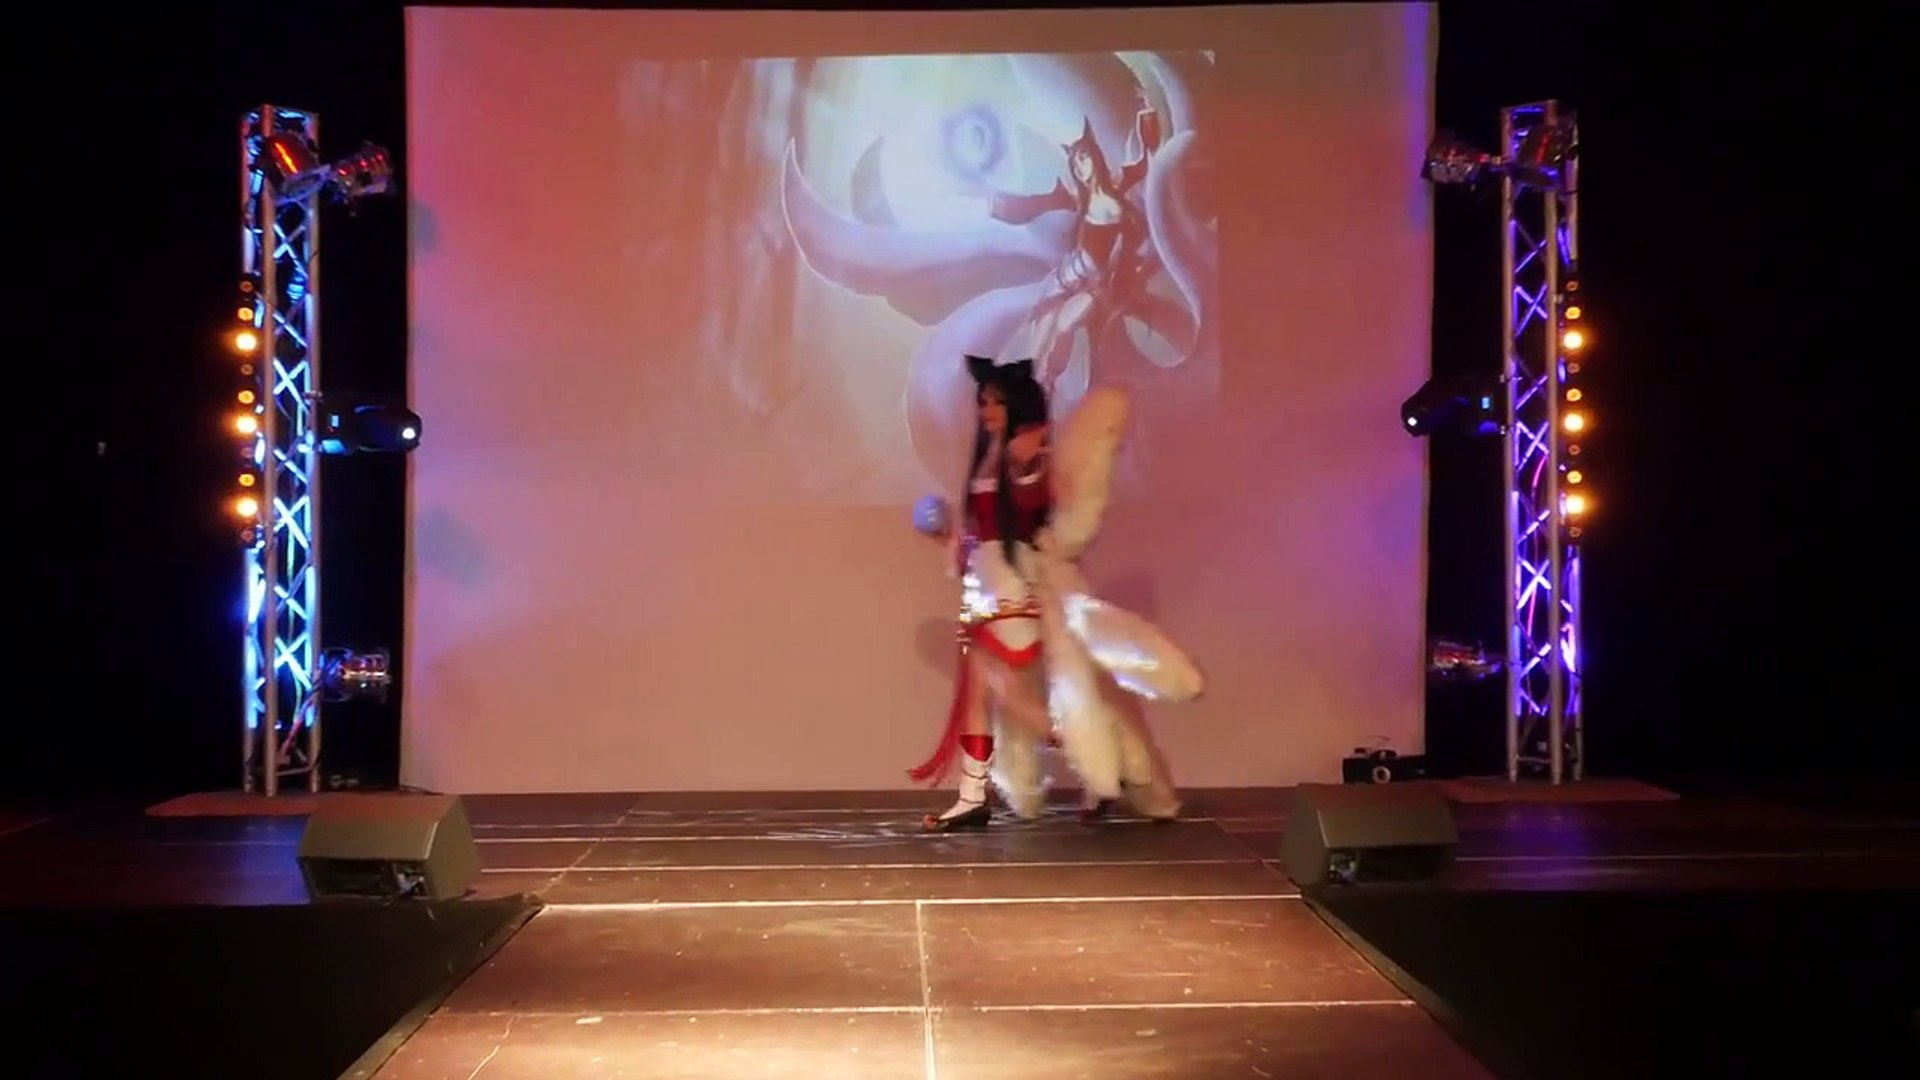 Japan Party 2015 - Concours Cosplay Samedi - 04 - League of Legends - Ahri